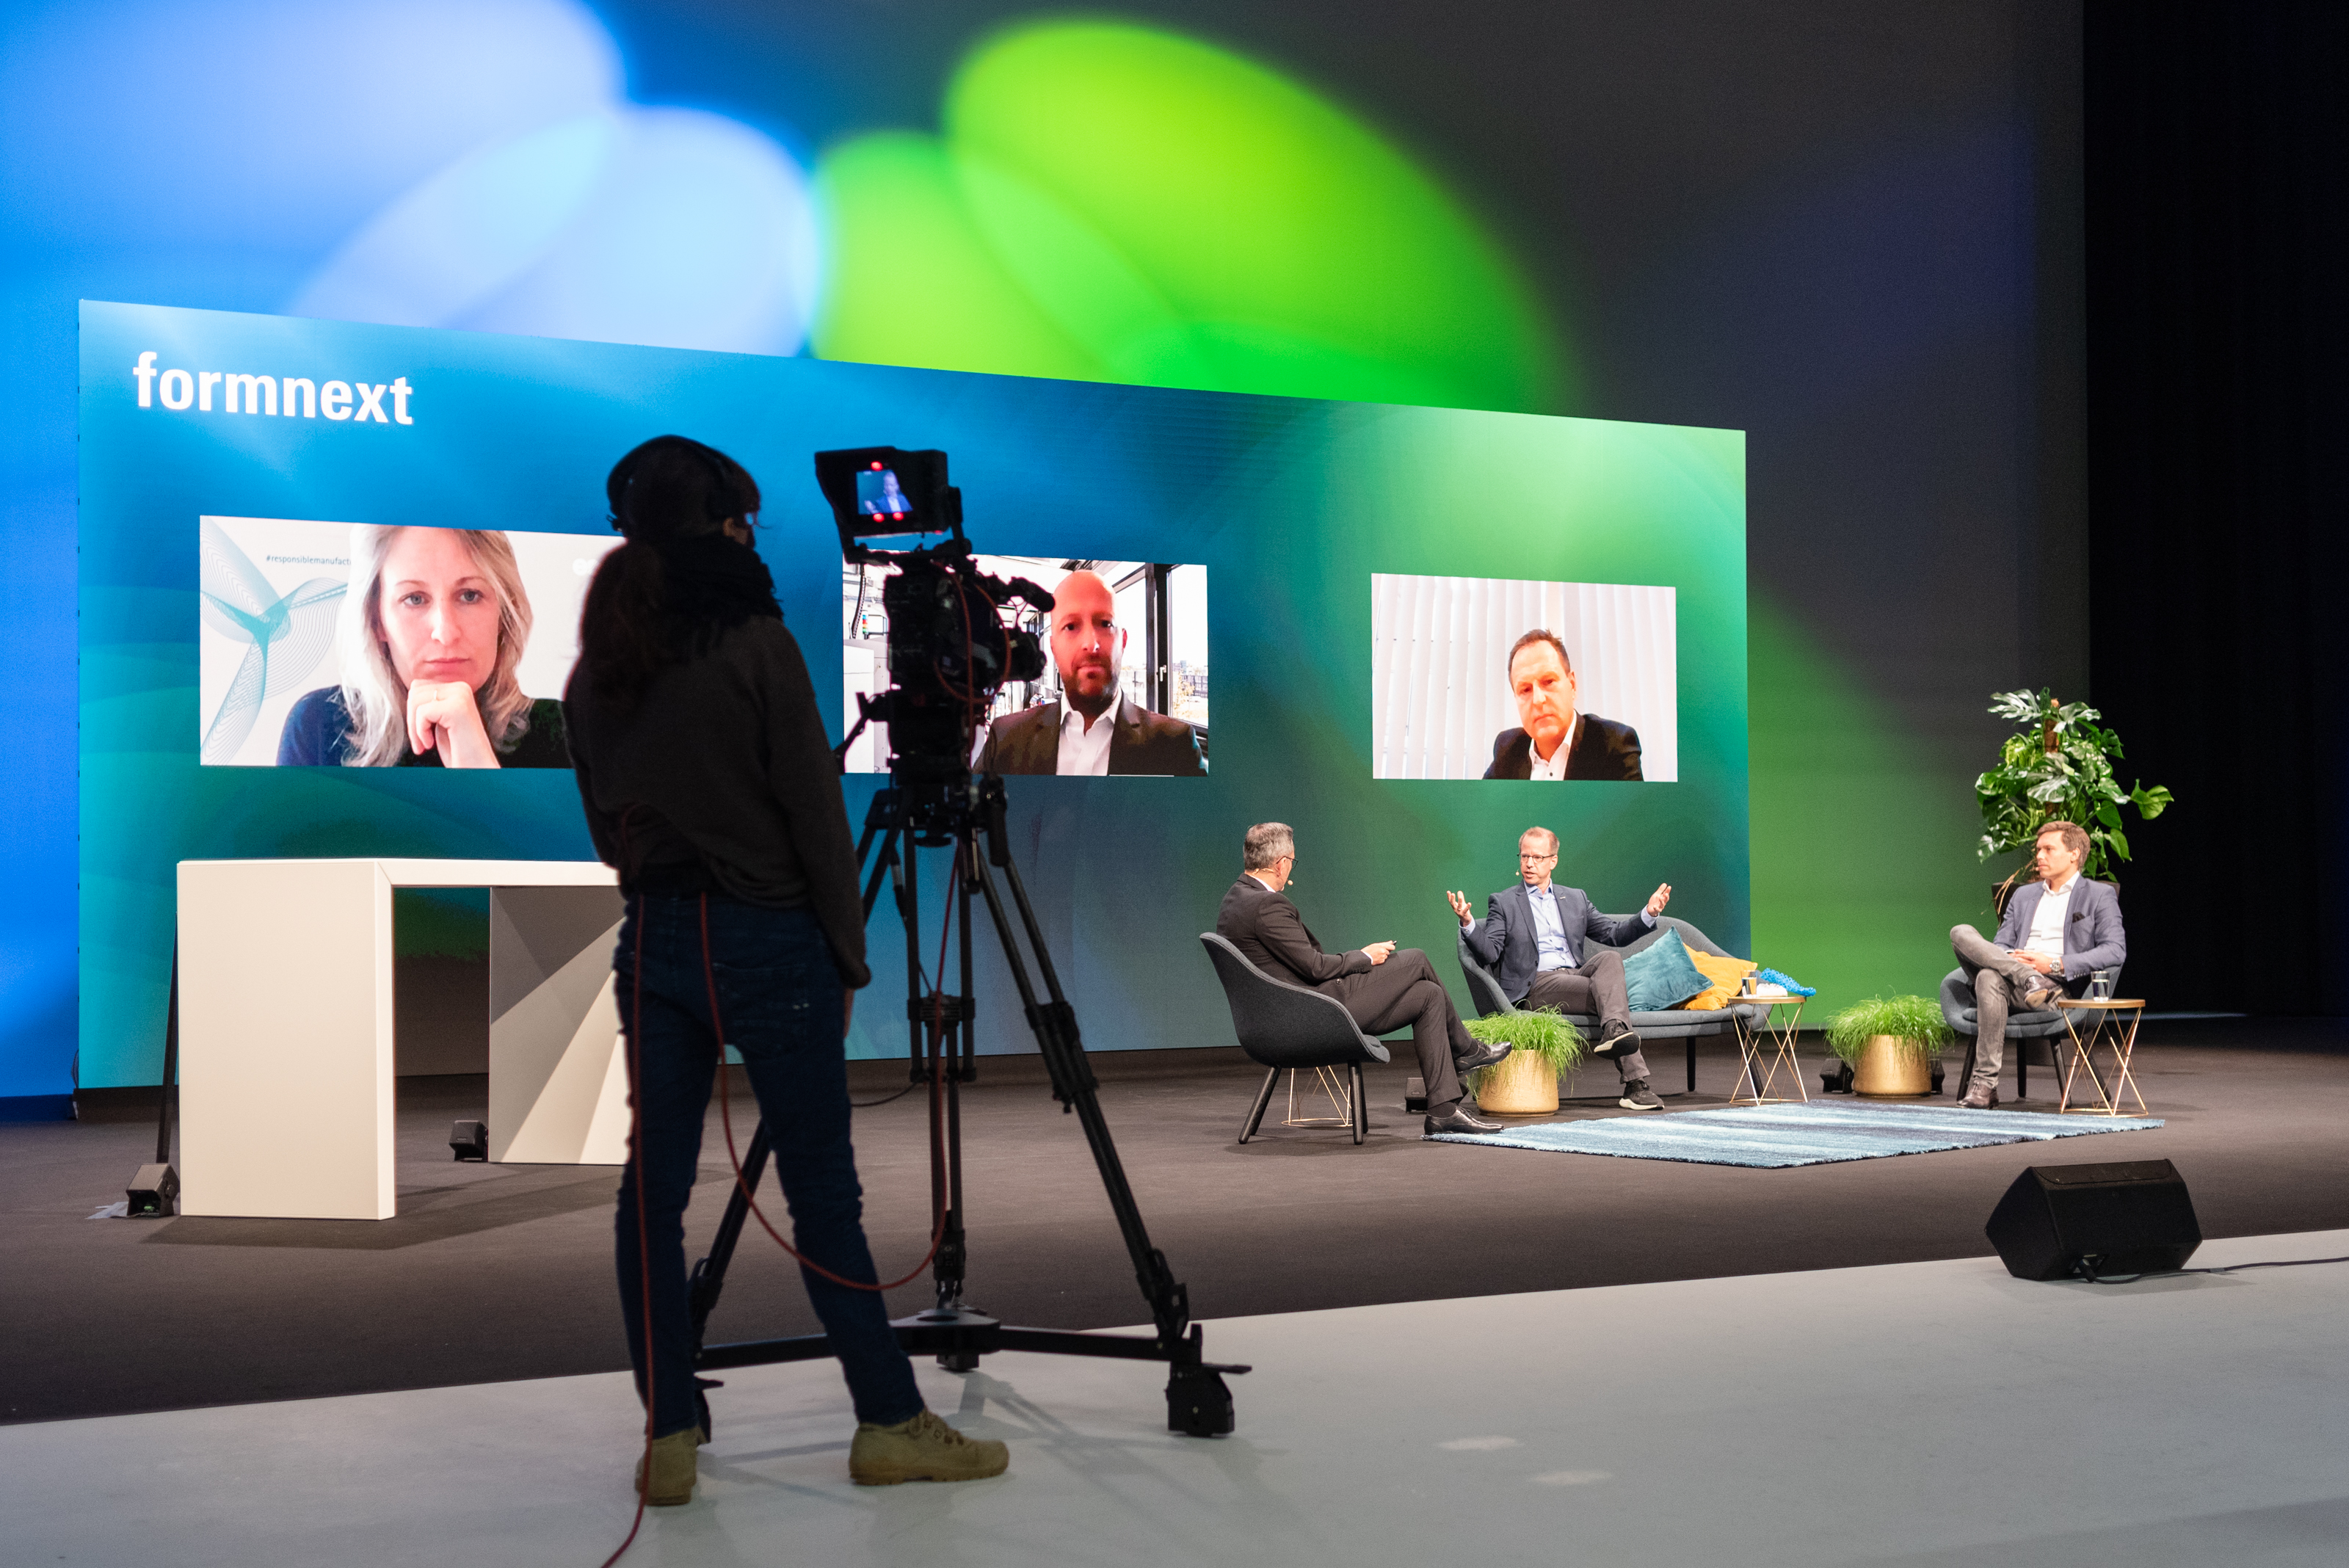 The main stage at Formnext Connect 2020. Image via Mesago Messe Frankfurt.